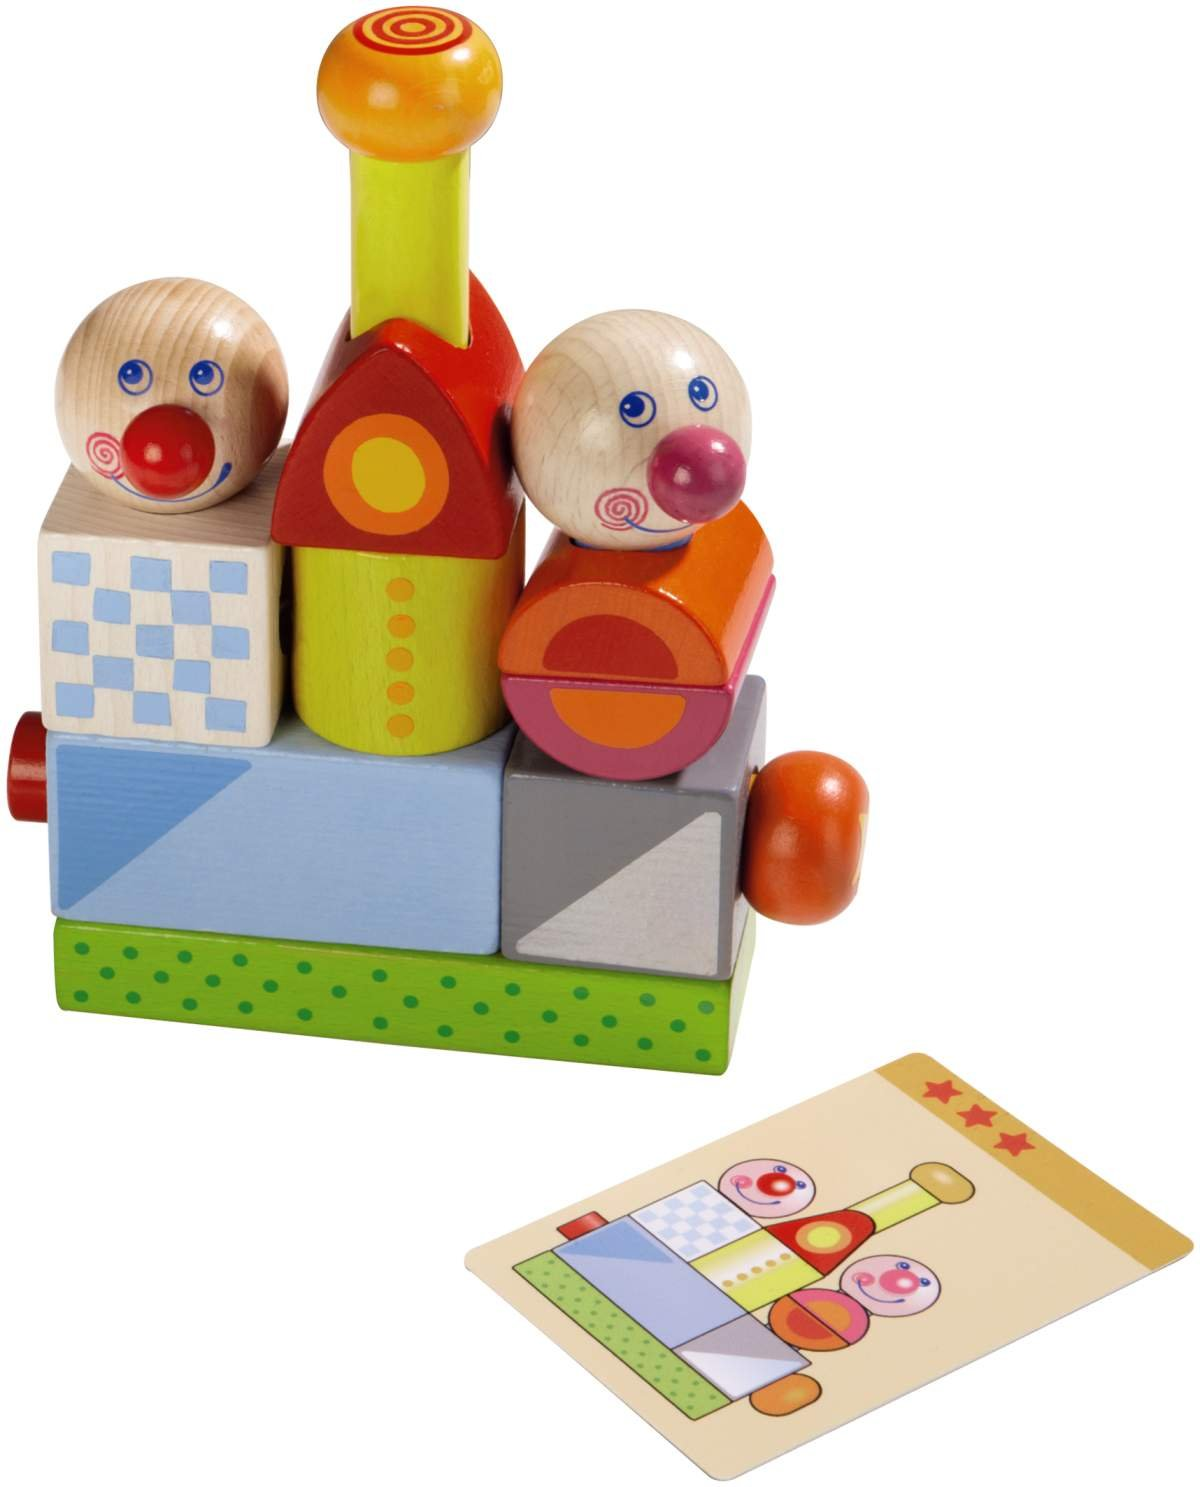 5675 Made in Germany HABA Smart Fellow Wooden Pegging Game with 20 Template Cards for Ages 2 and Up